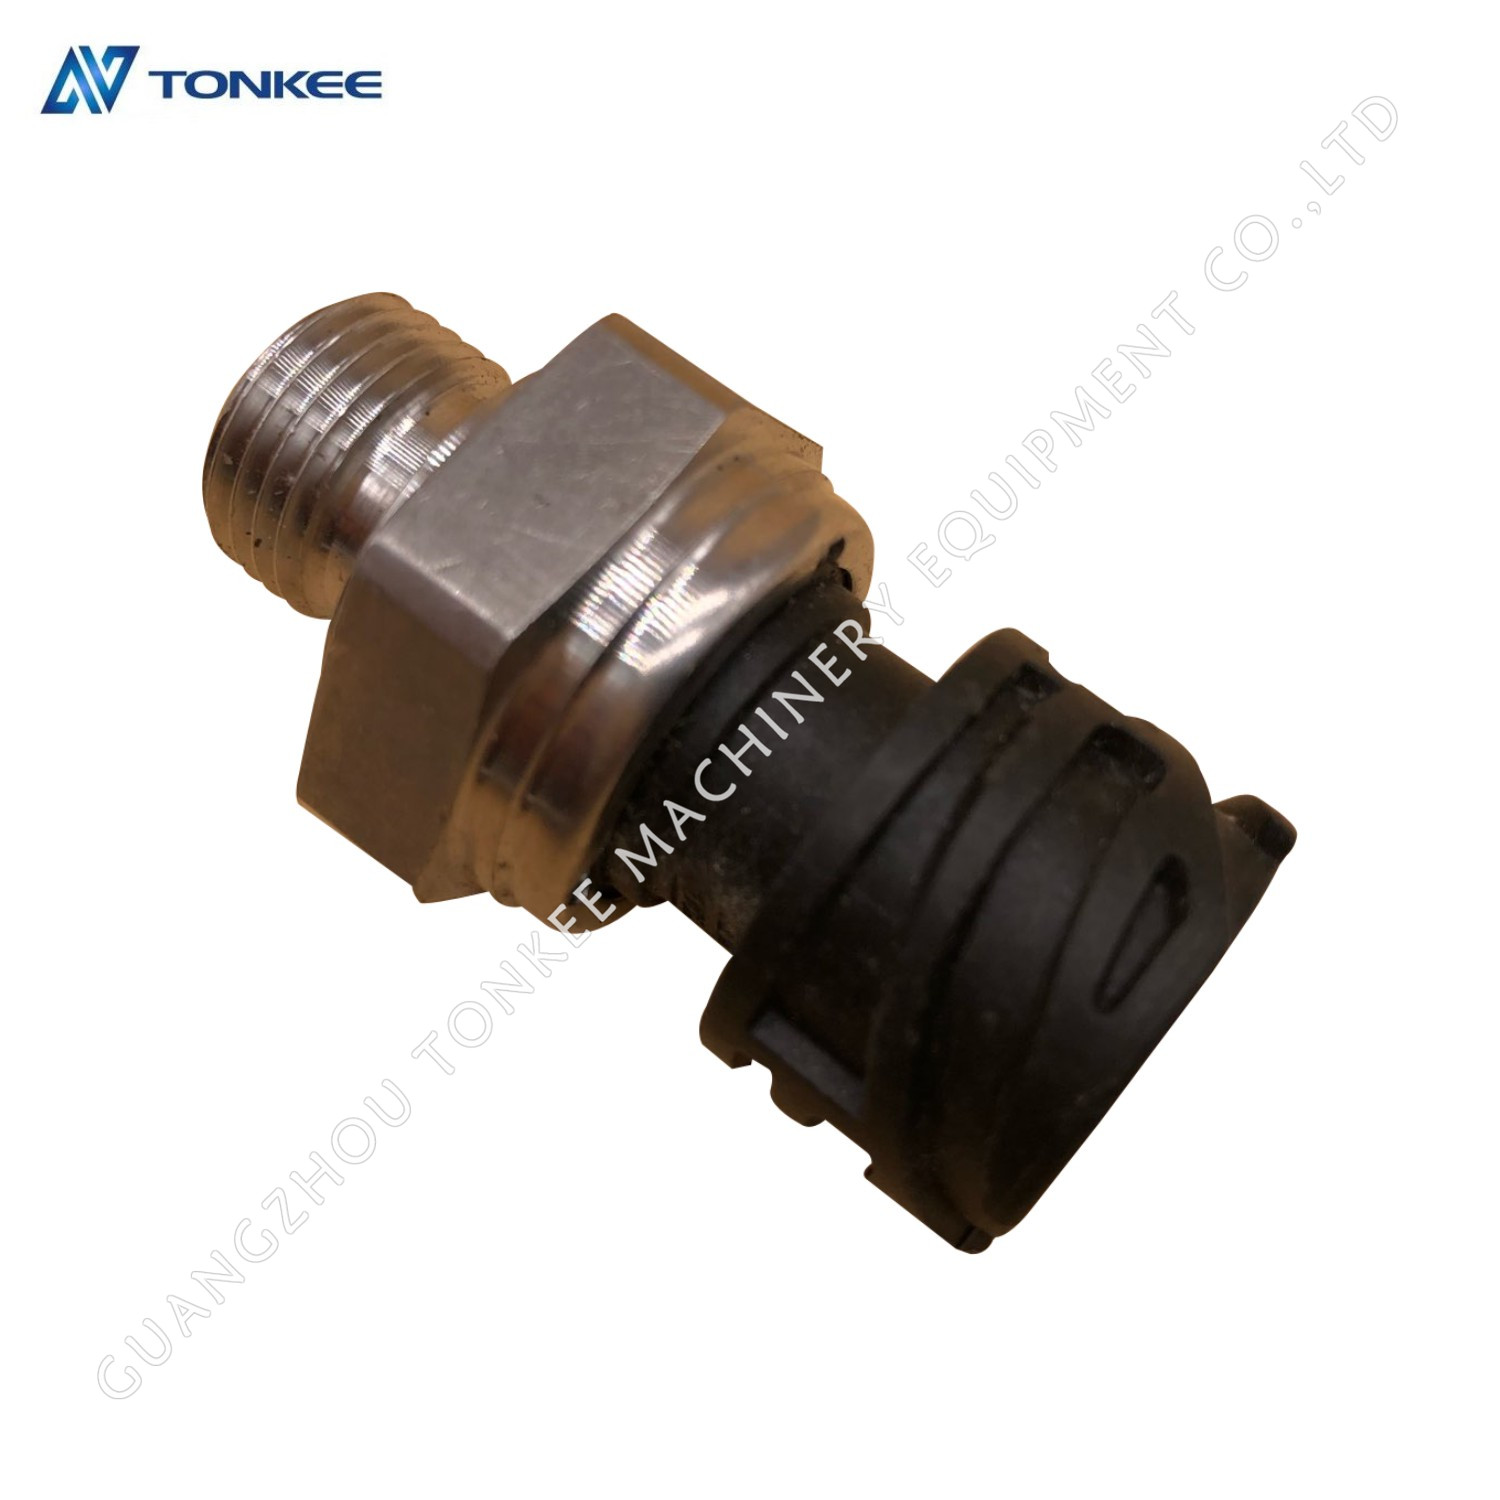 Construction Machinery Parts 21634024 VOE21634024 Sender Unit oil pressure sensor FH12 FM12 FH16 oil pressure sensor